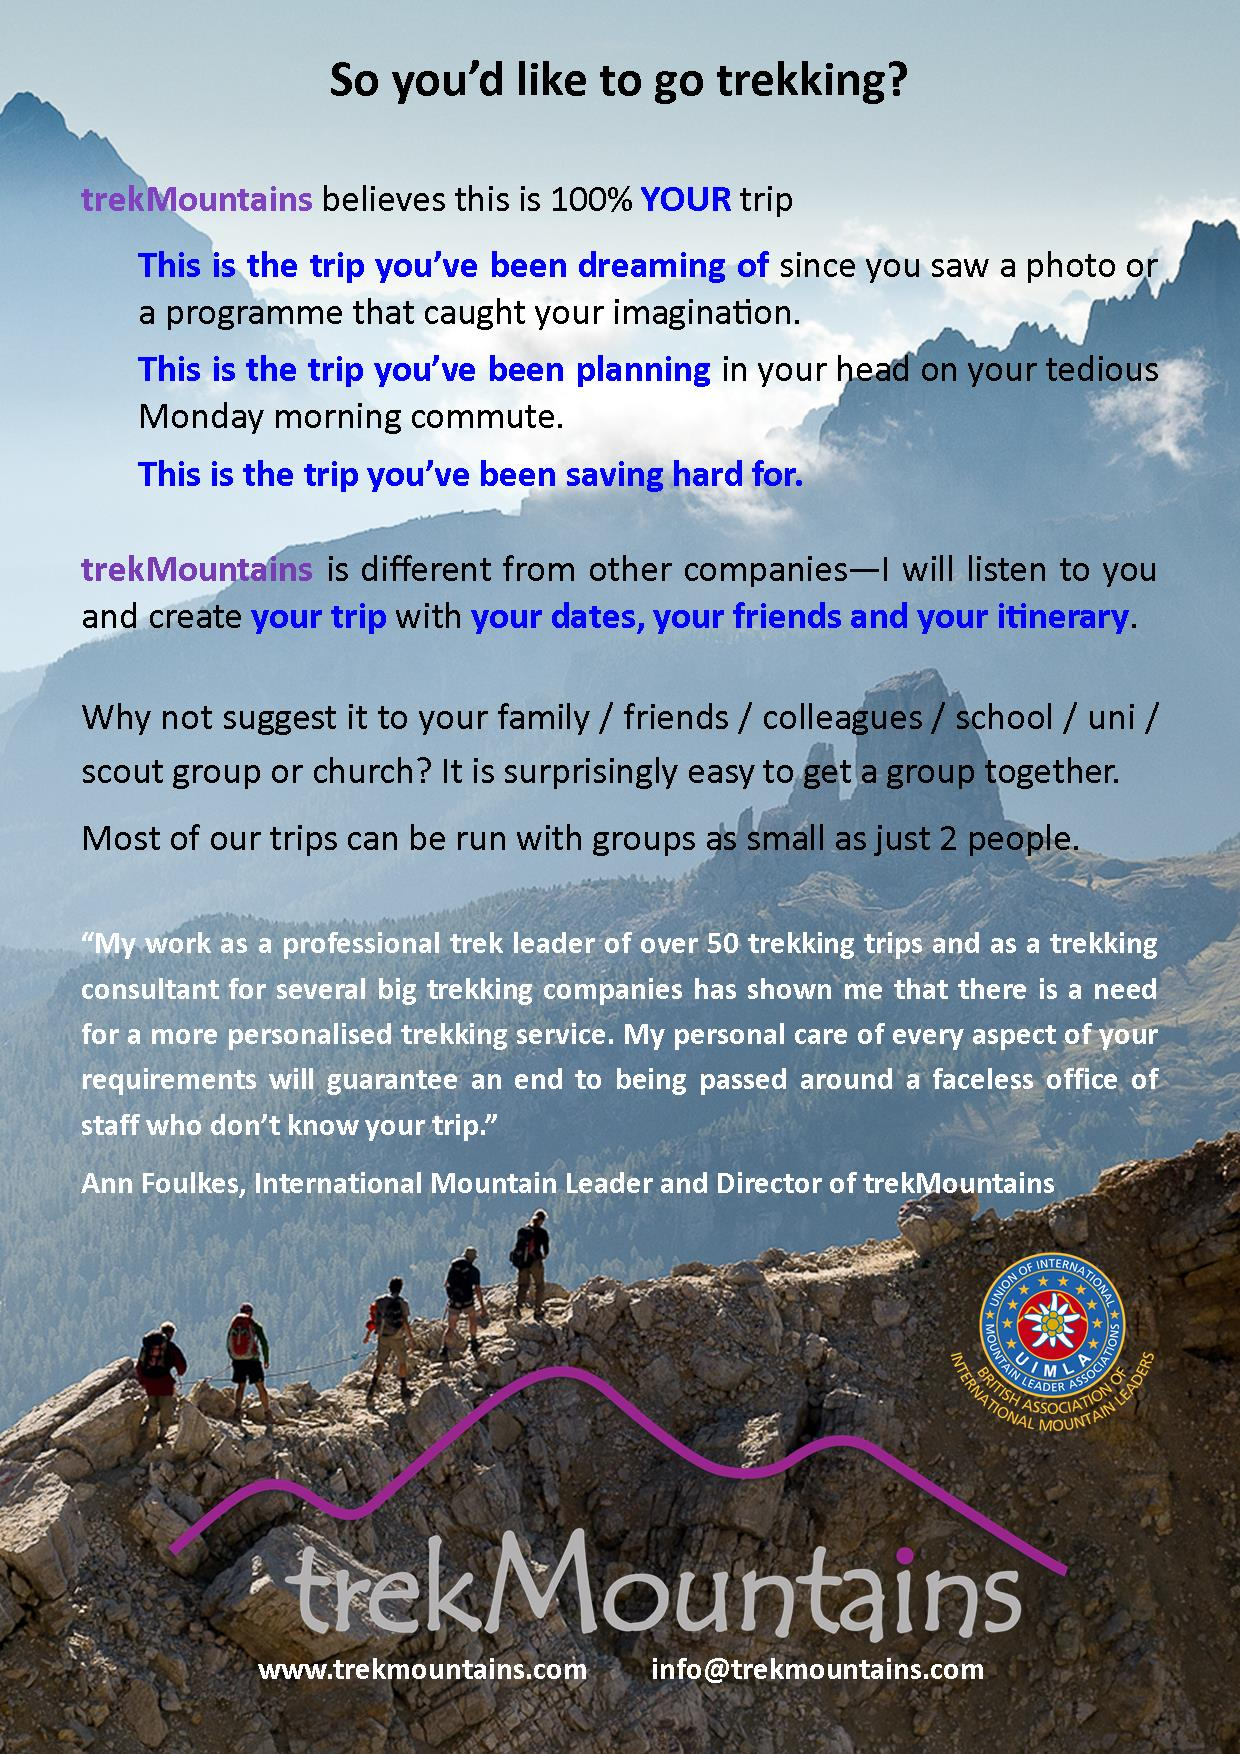 trekMountains our ethos